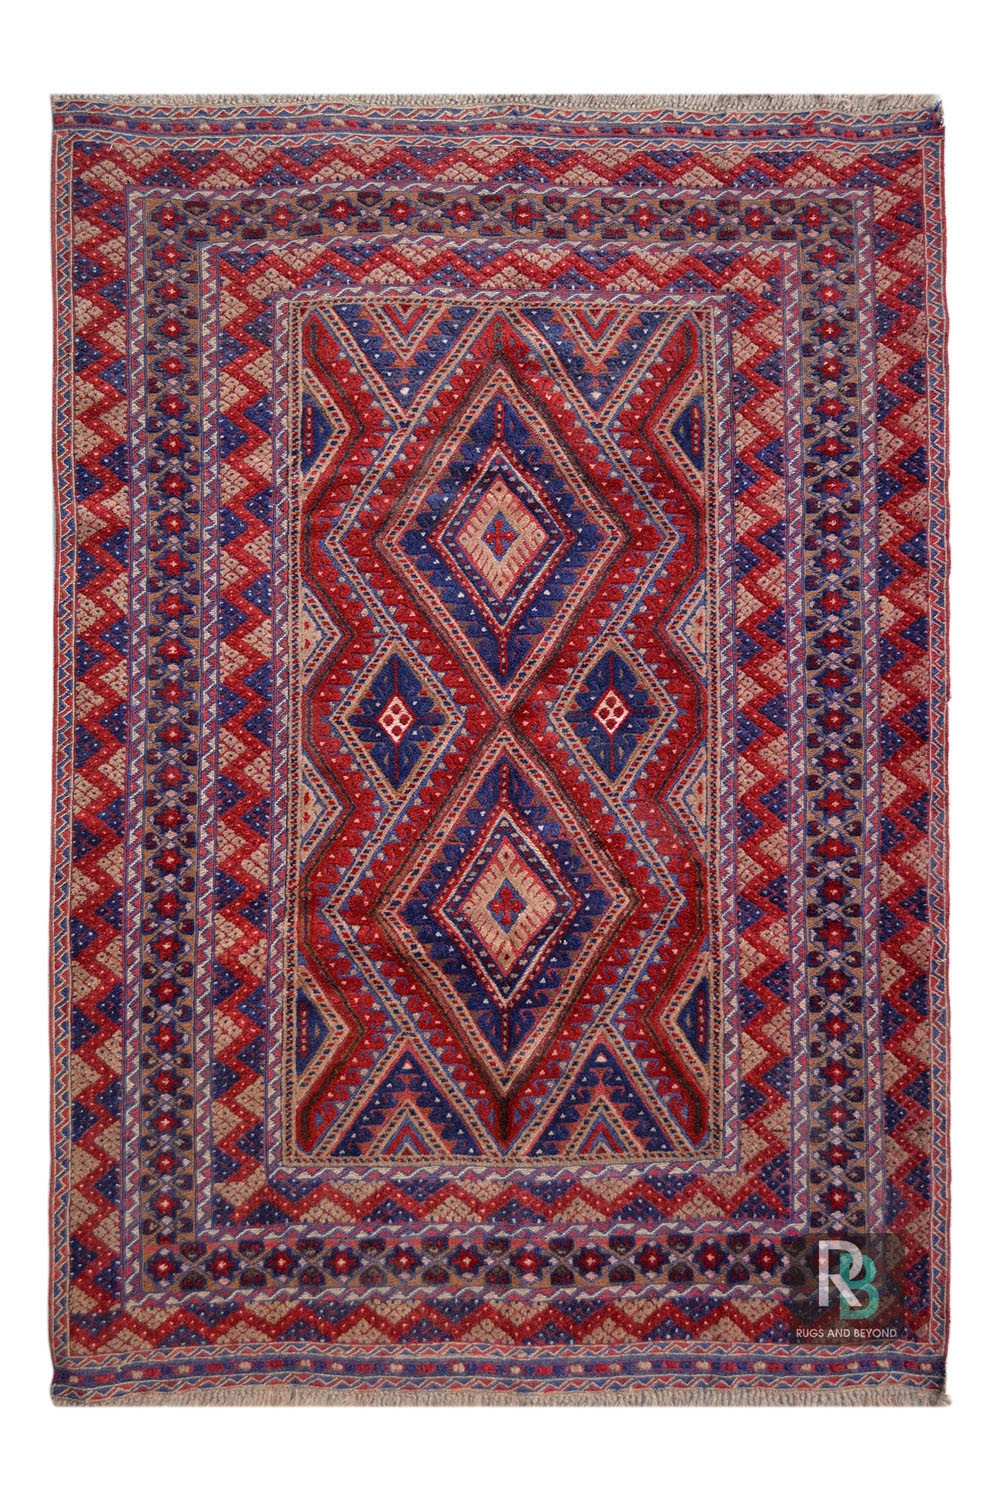 Dual Barjesta Handmade Kilim Rugs And Carpet Online At